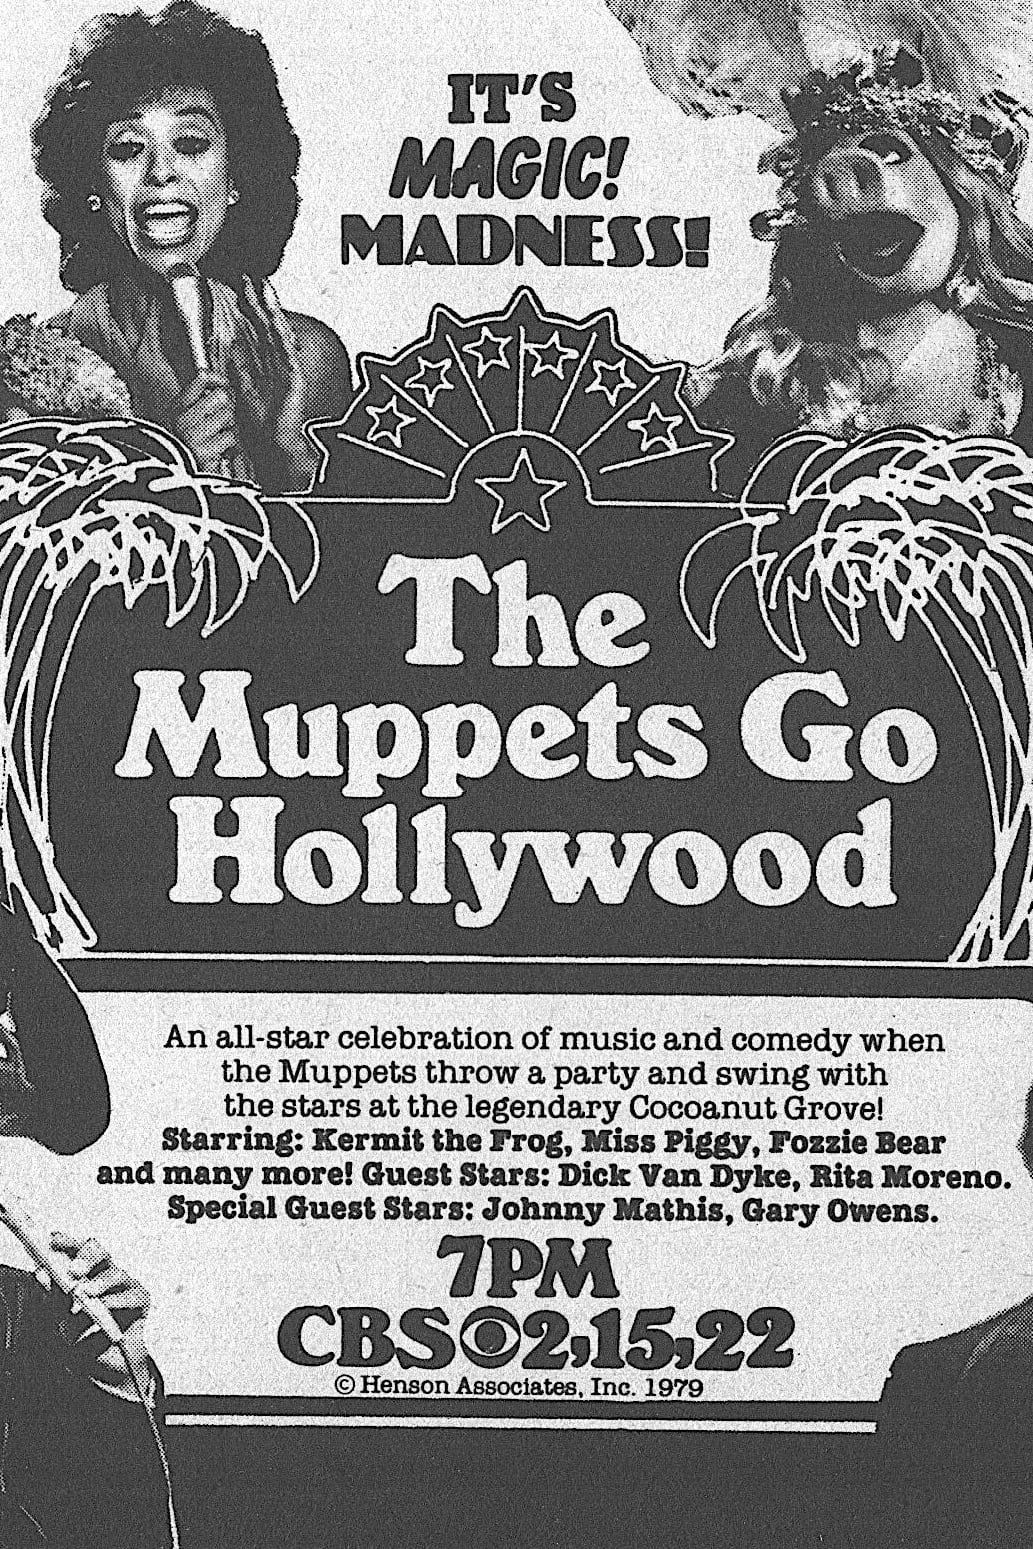 The Muppets Go Hollywood (1979)